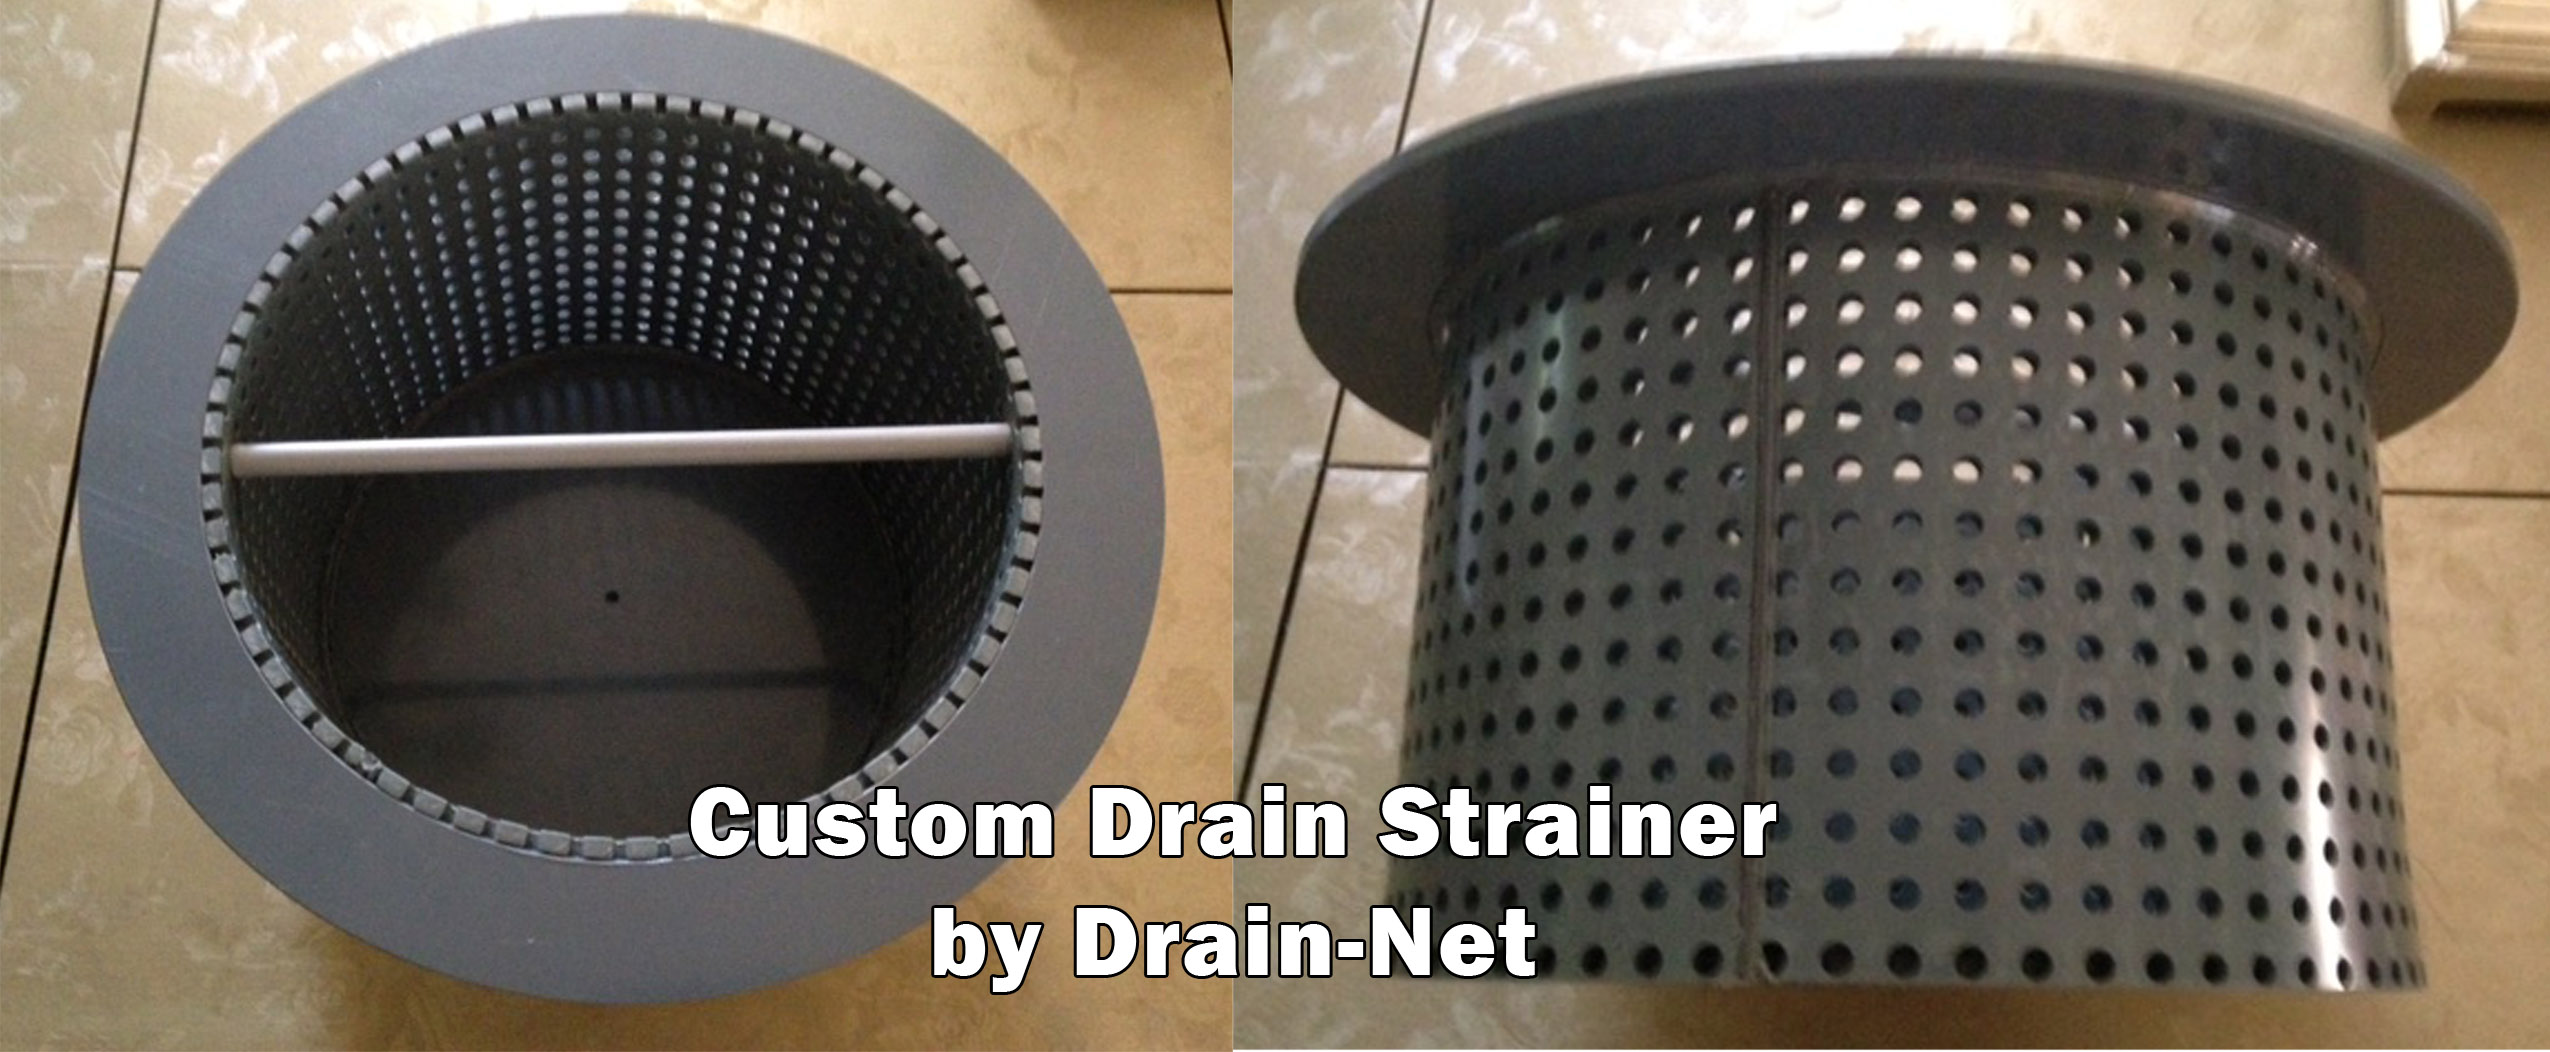 Custom Drain Strainers for commercial facilities in